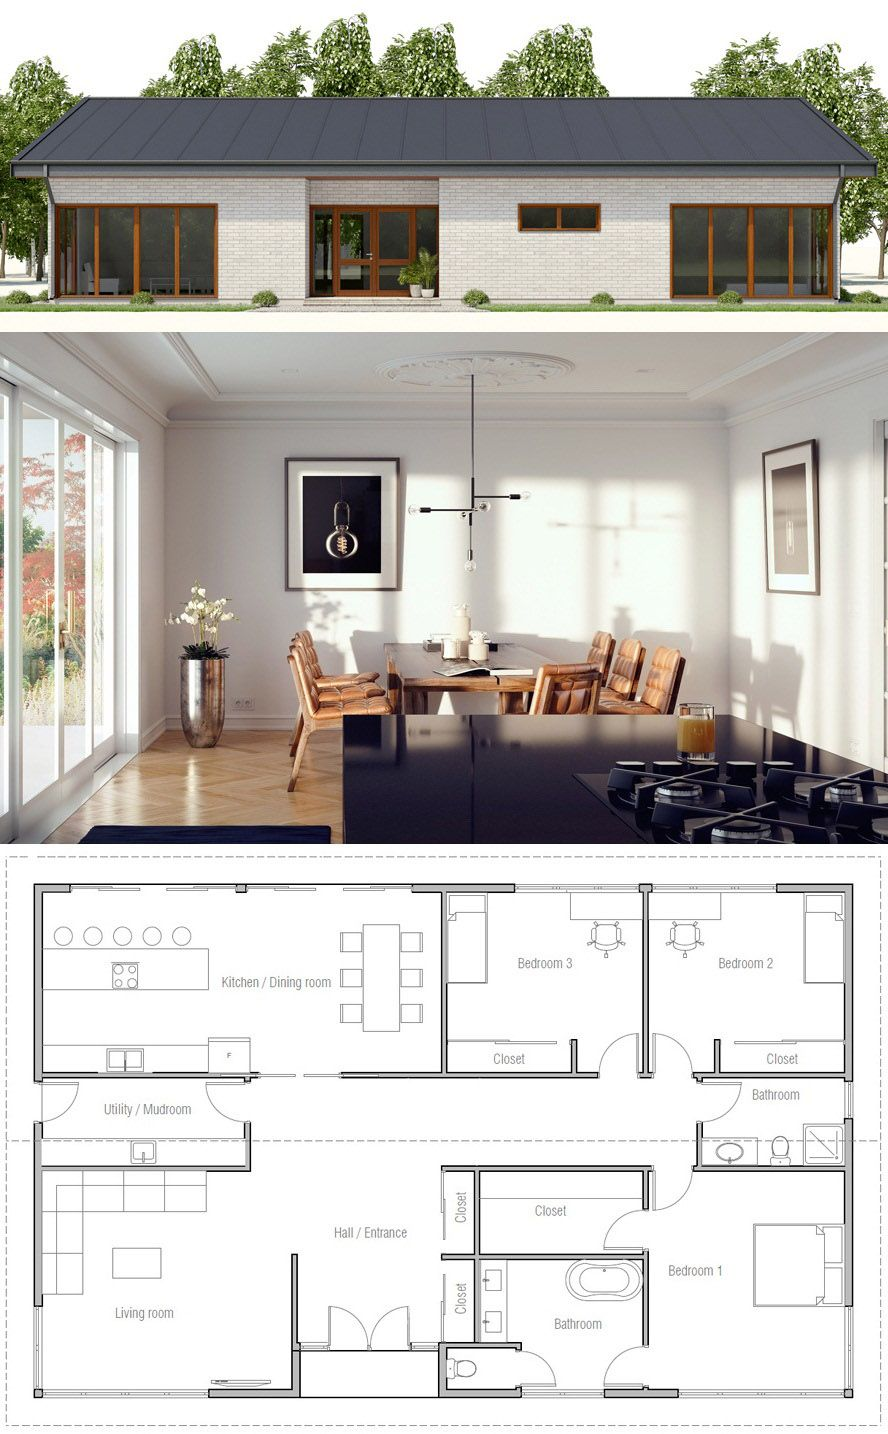 House plan | ev planı | Pinterest | House, Smallest house and Tiny ...